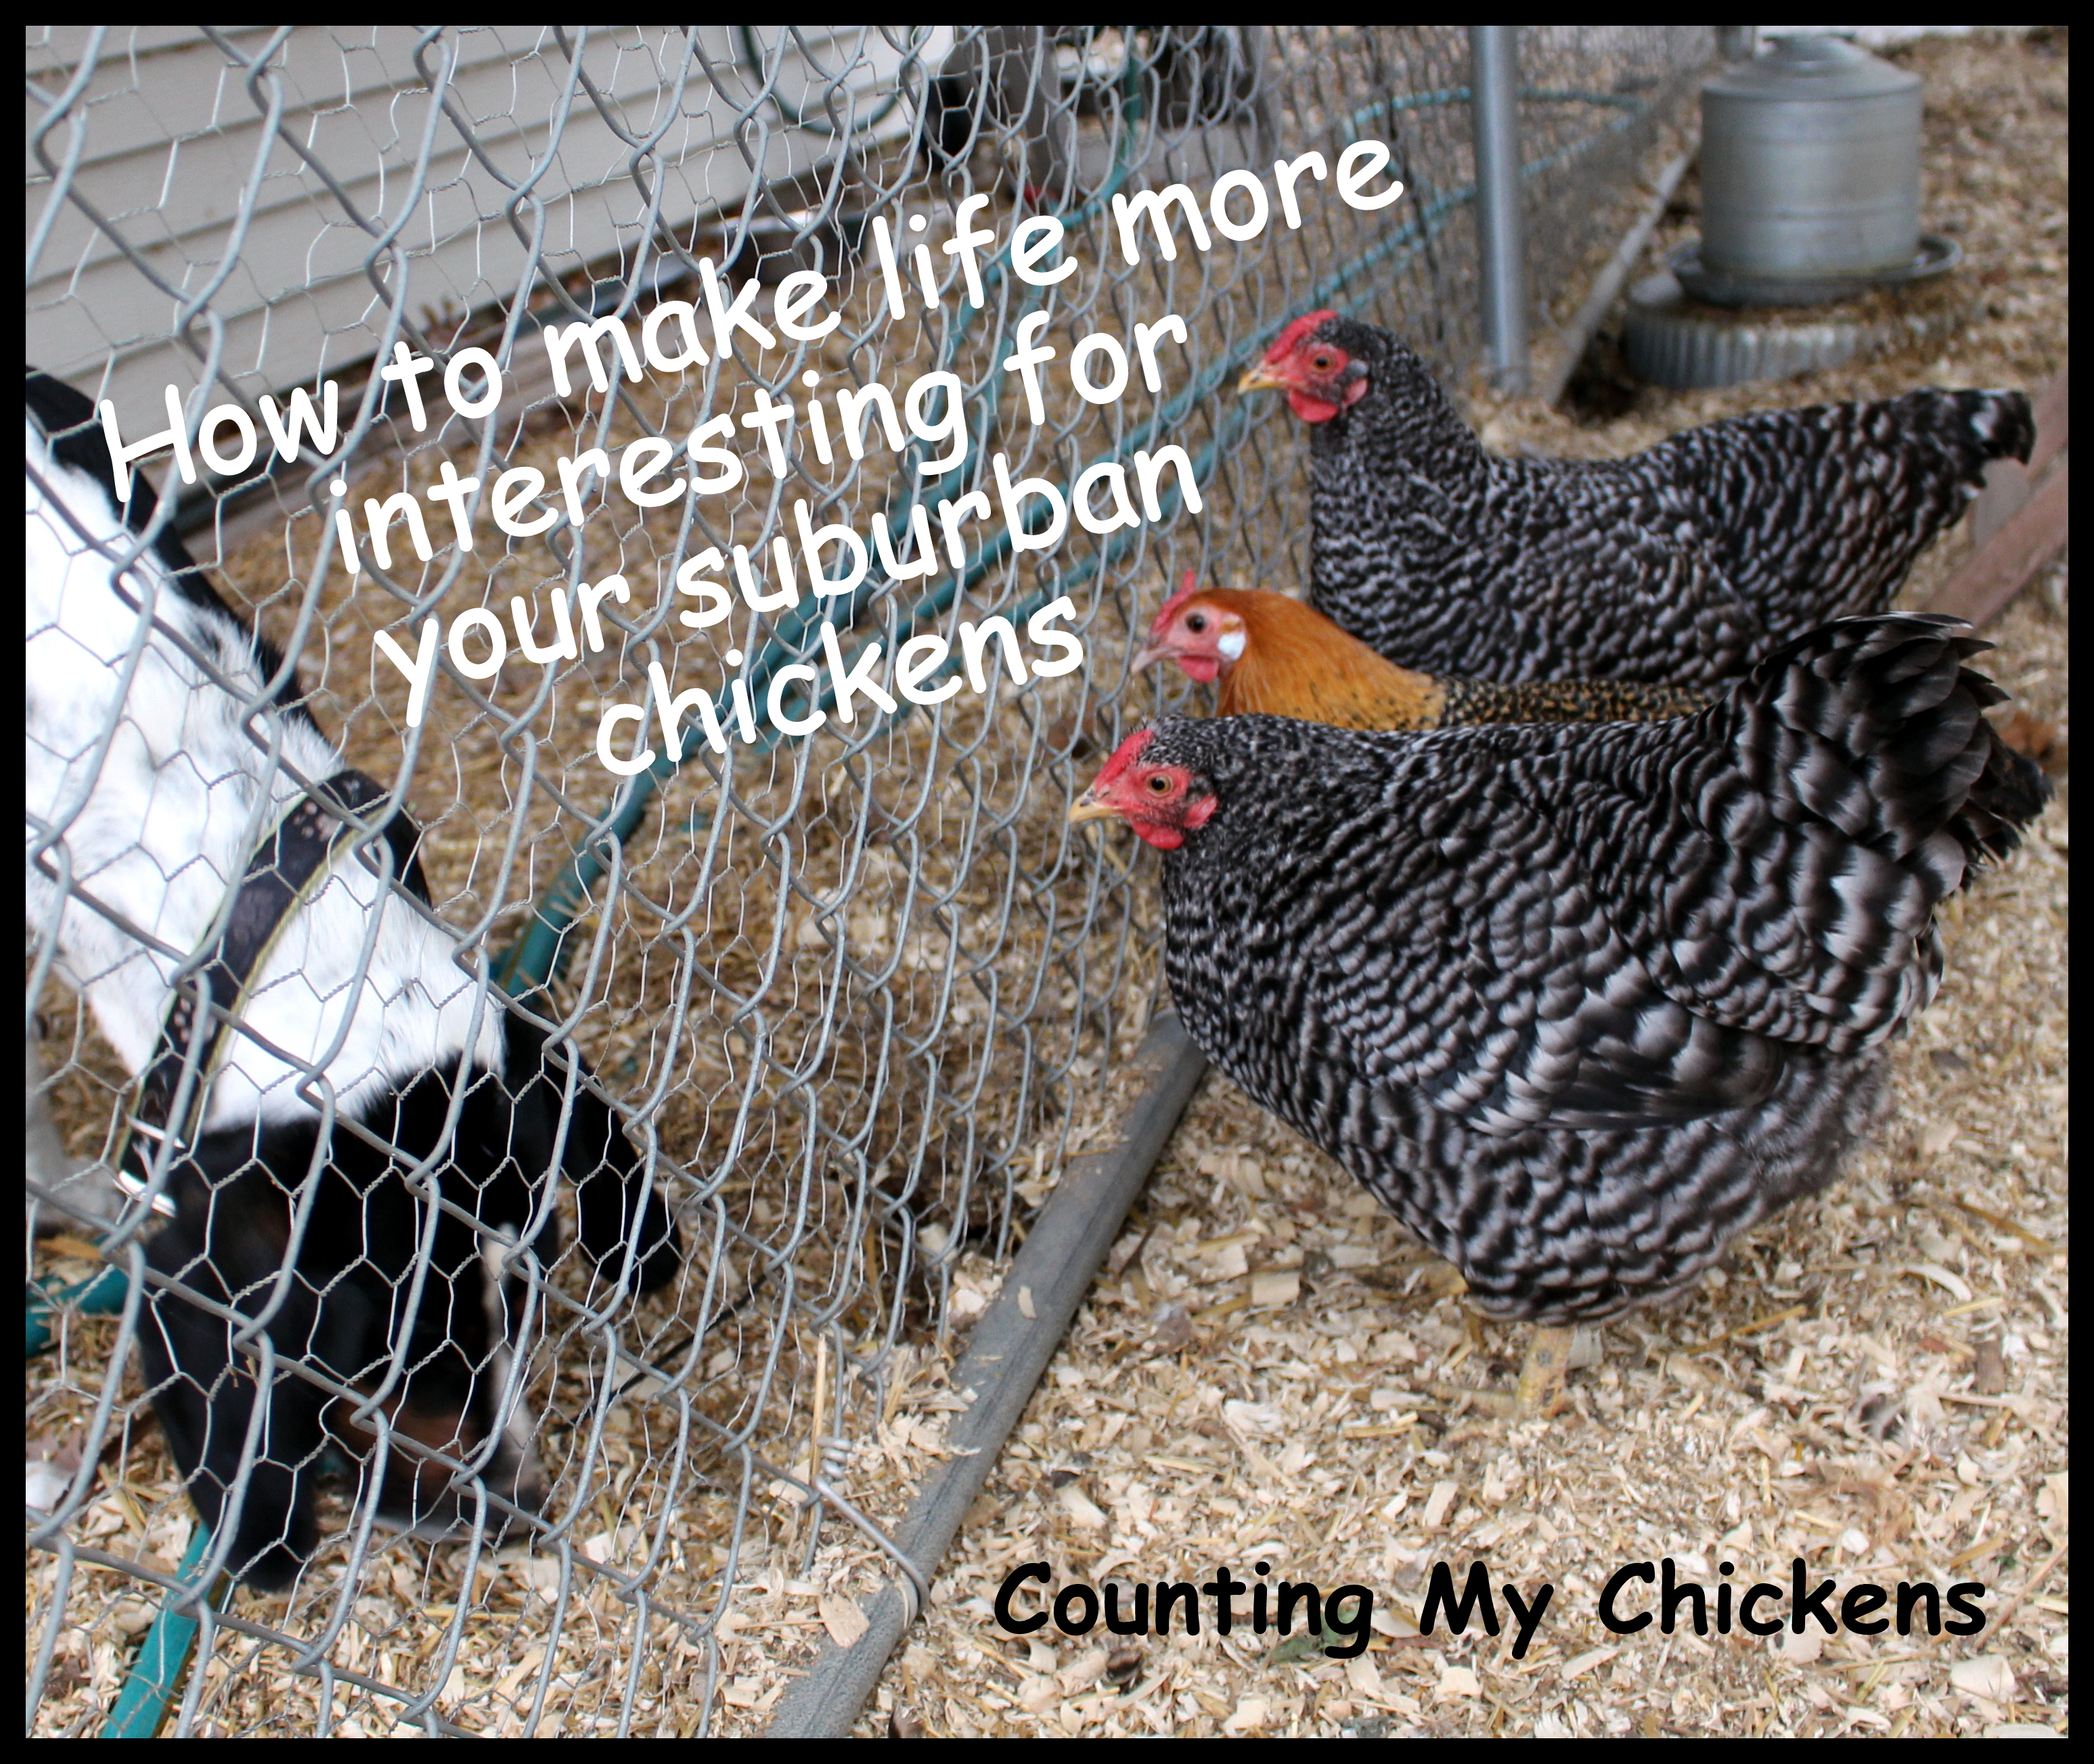 How to Make Life More Interesting for Your Suburban Chickens ...